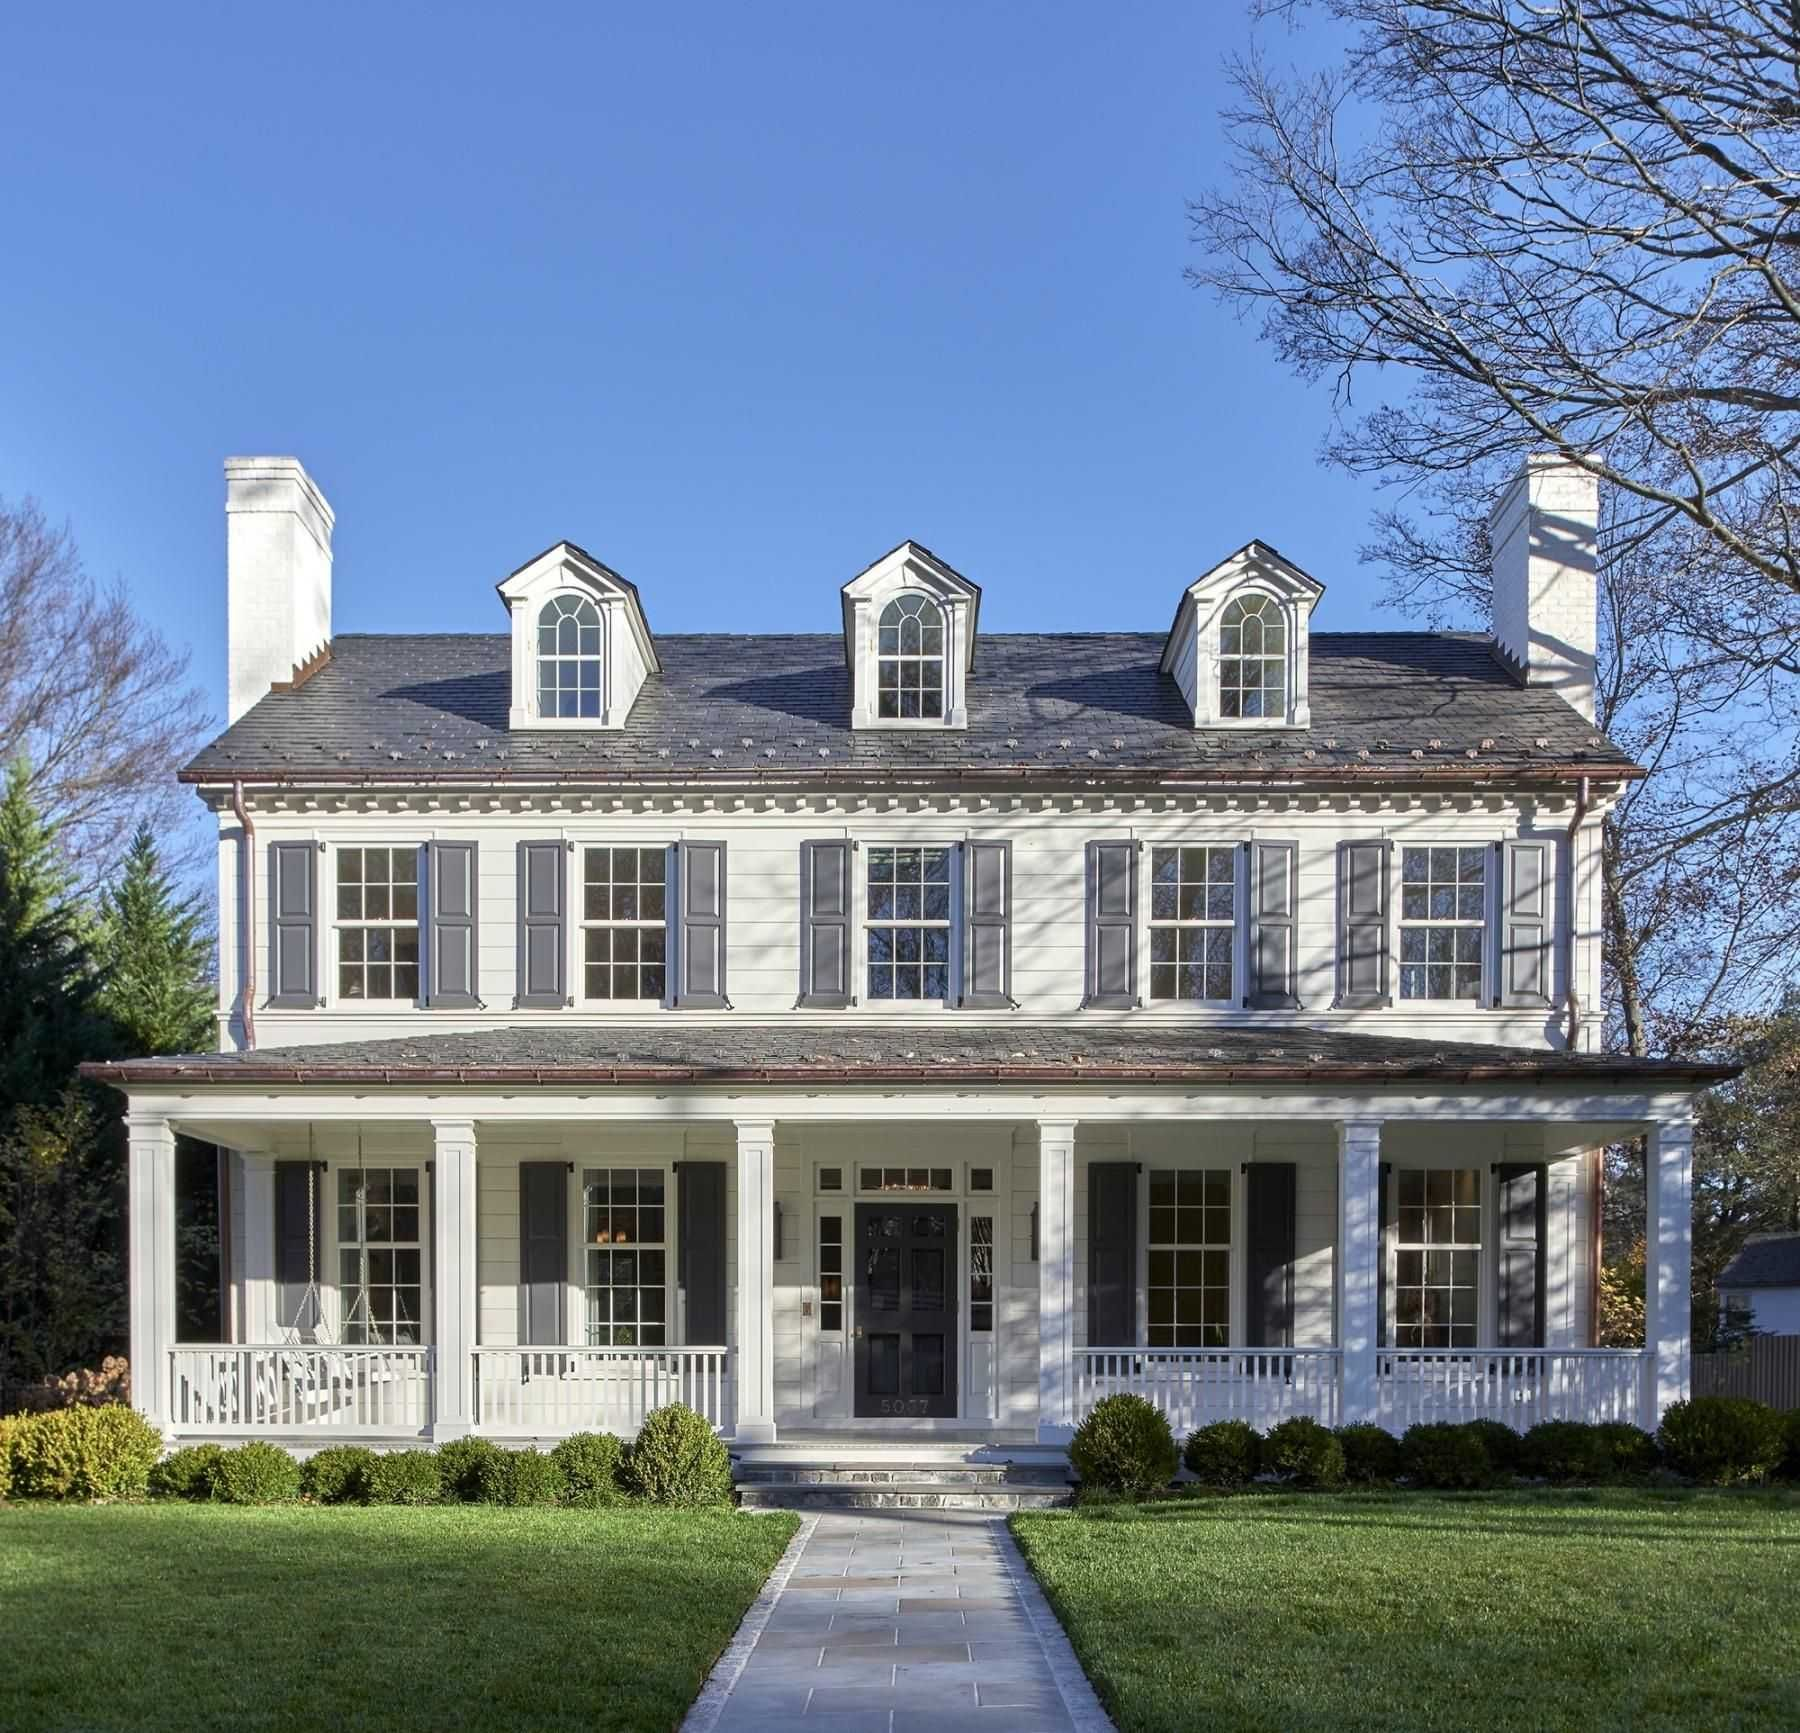 House Plans With Solarium And Add Front Porch Sometimes I Just Love The Colonial Style Look Of Colonial House Exteriors Colonial Exterior Colonial House